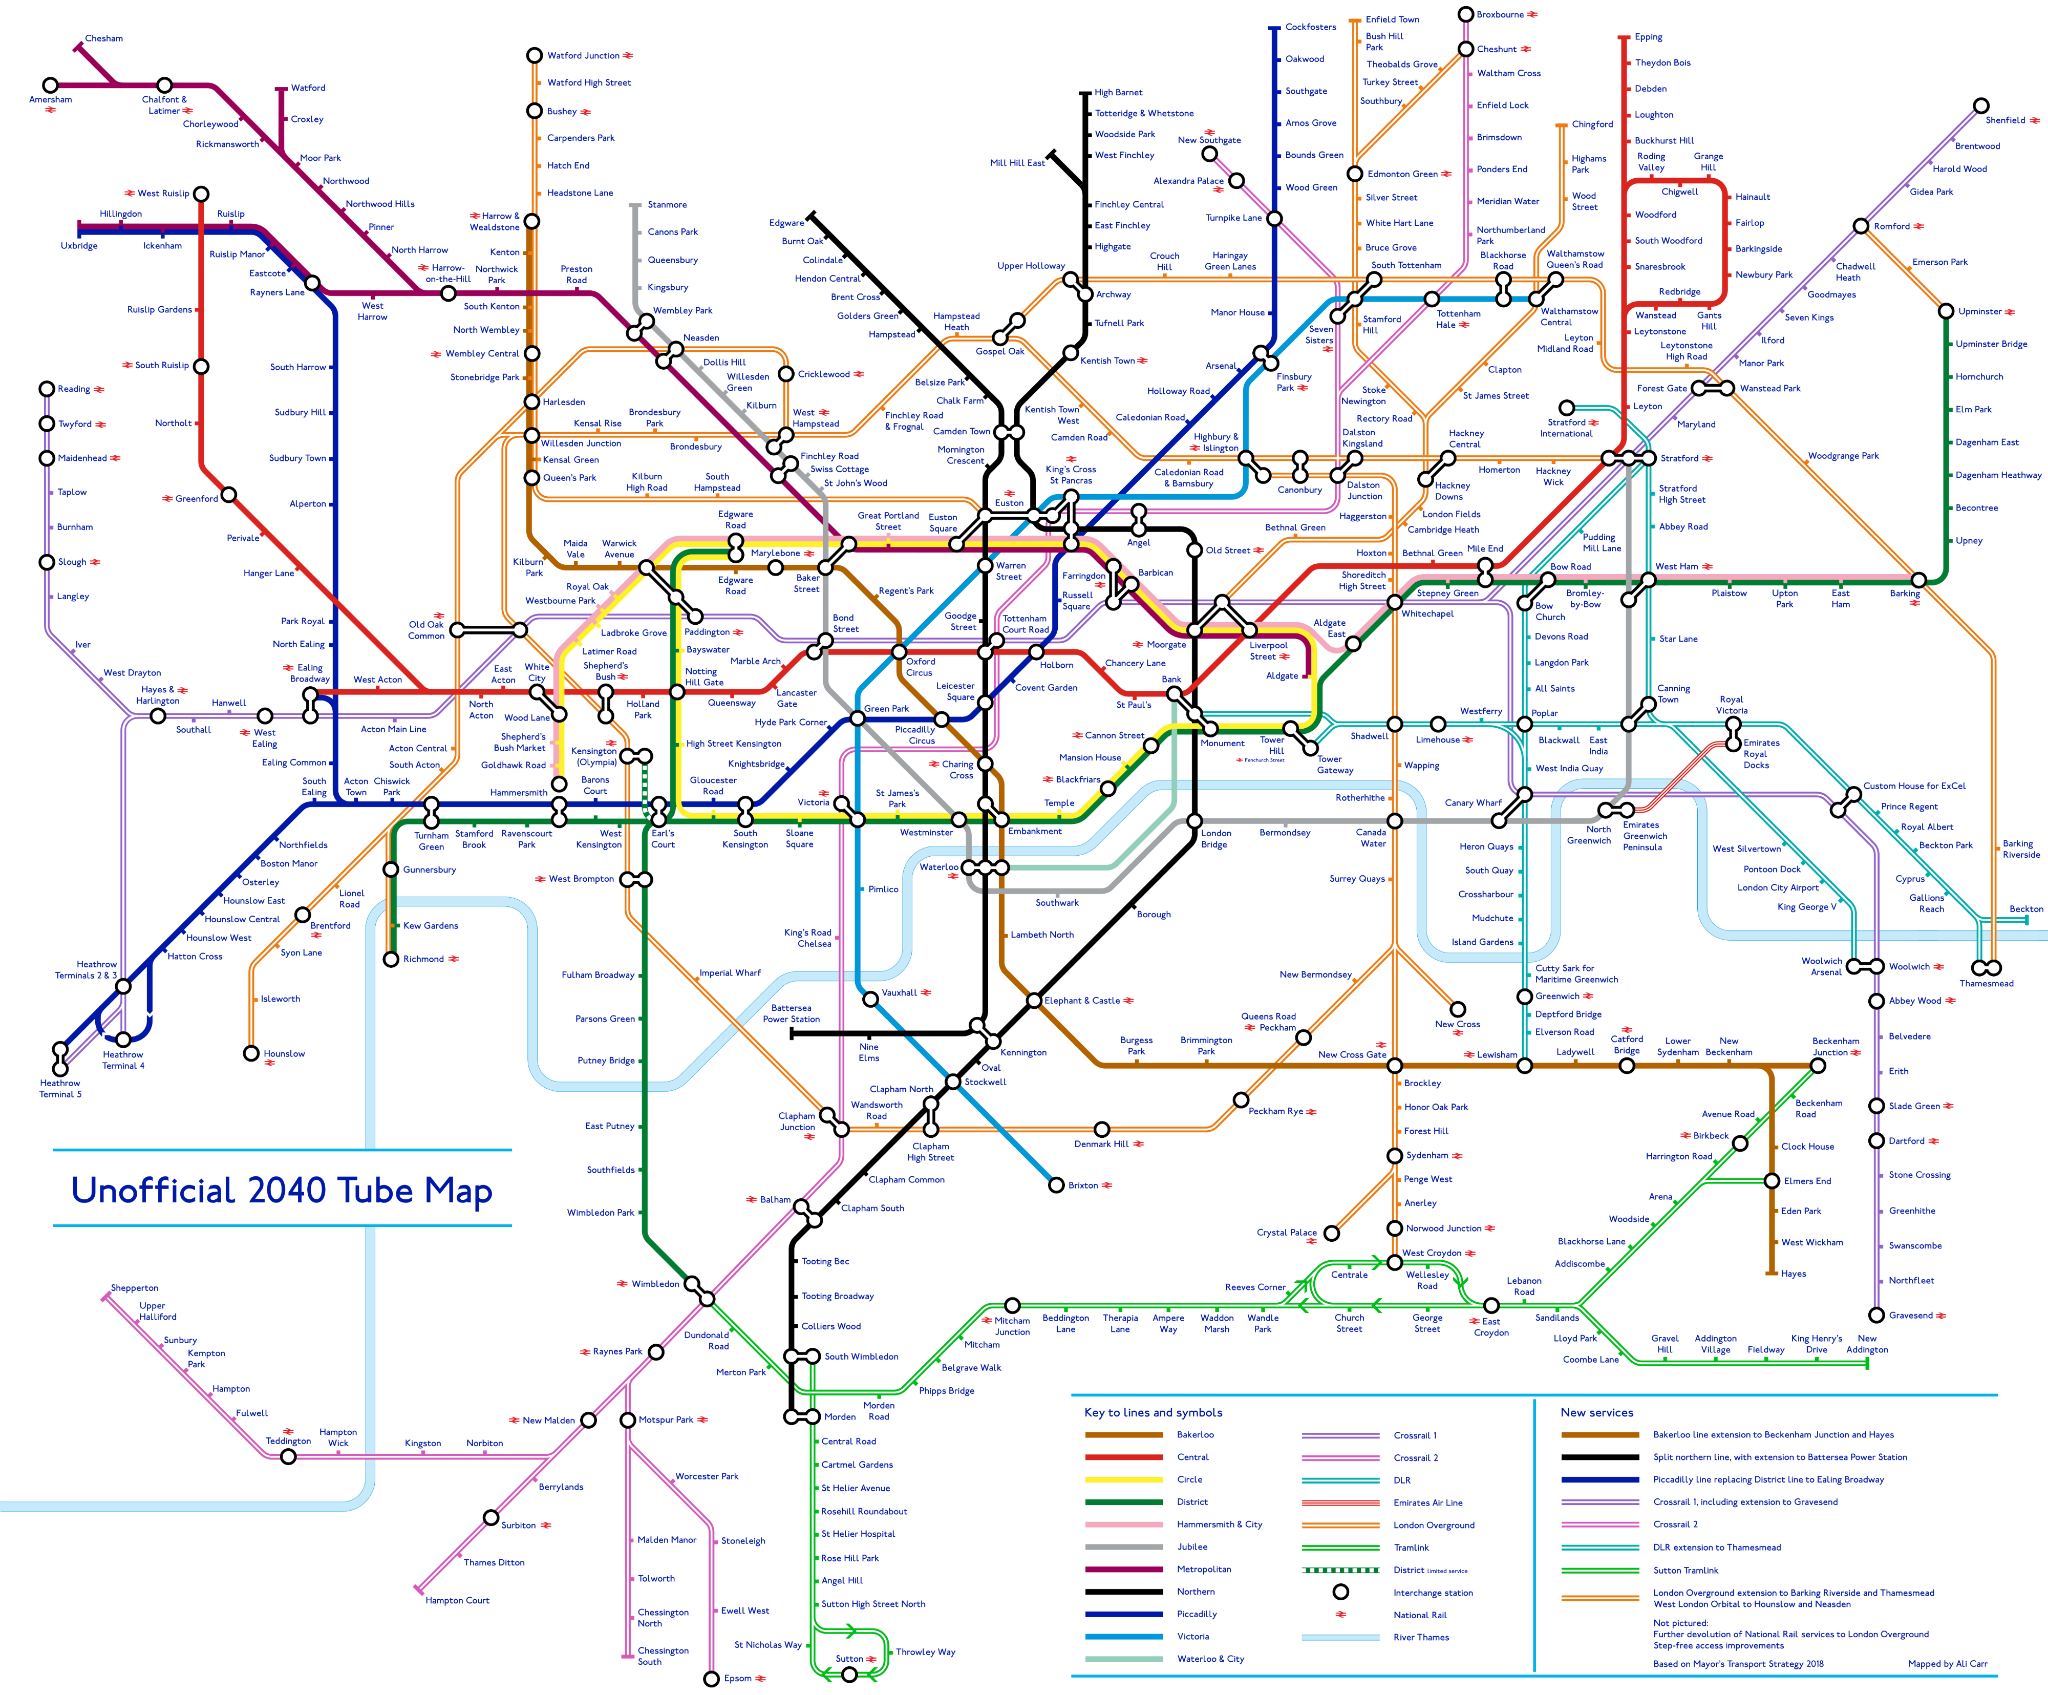 Map Of London Underground Here's what the London tube map could look like in 2040